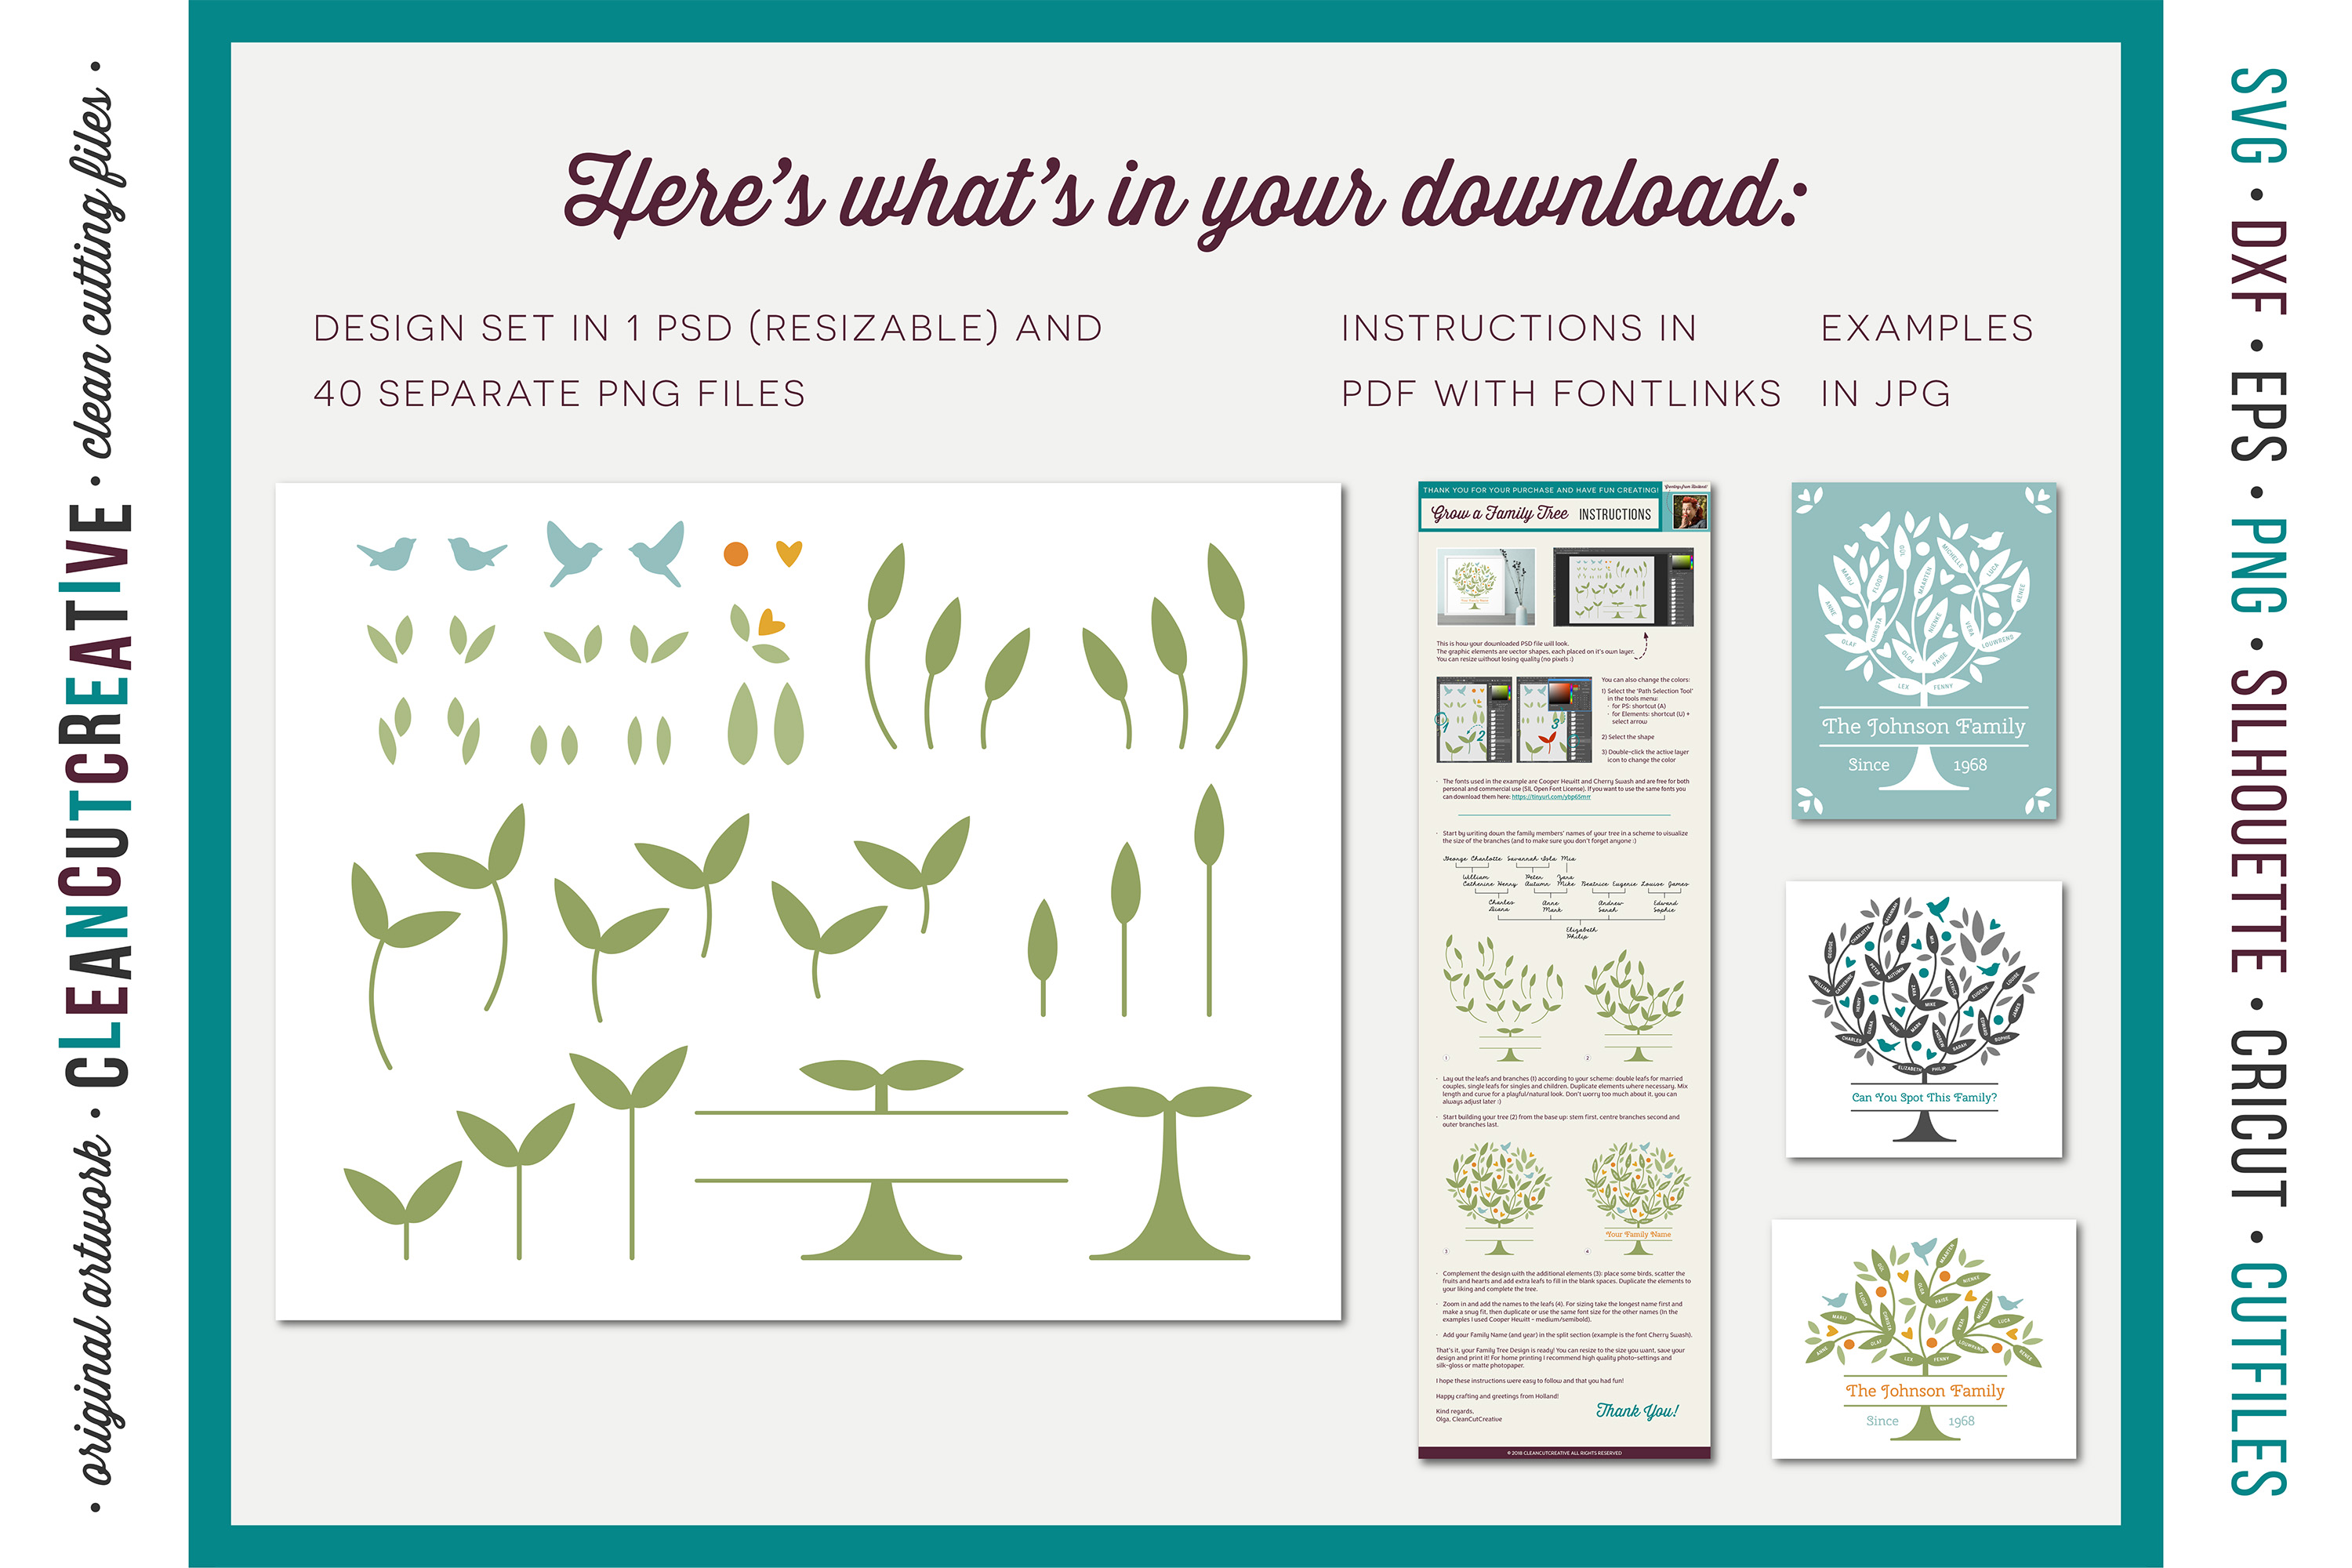 Grow a FAMILY TREE - Photoshop Edition - clipart design set example image 4